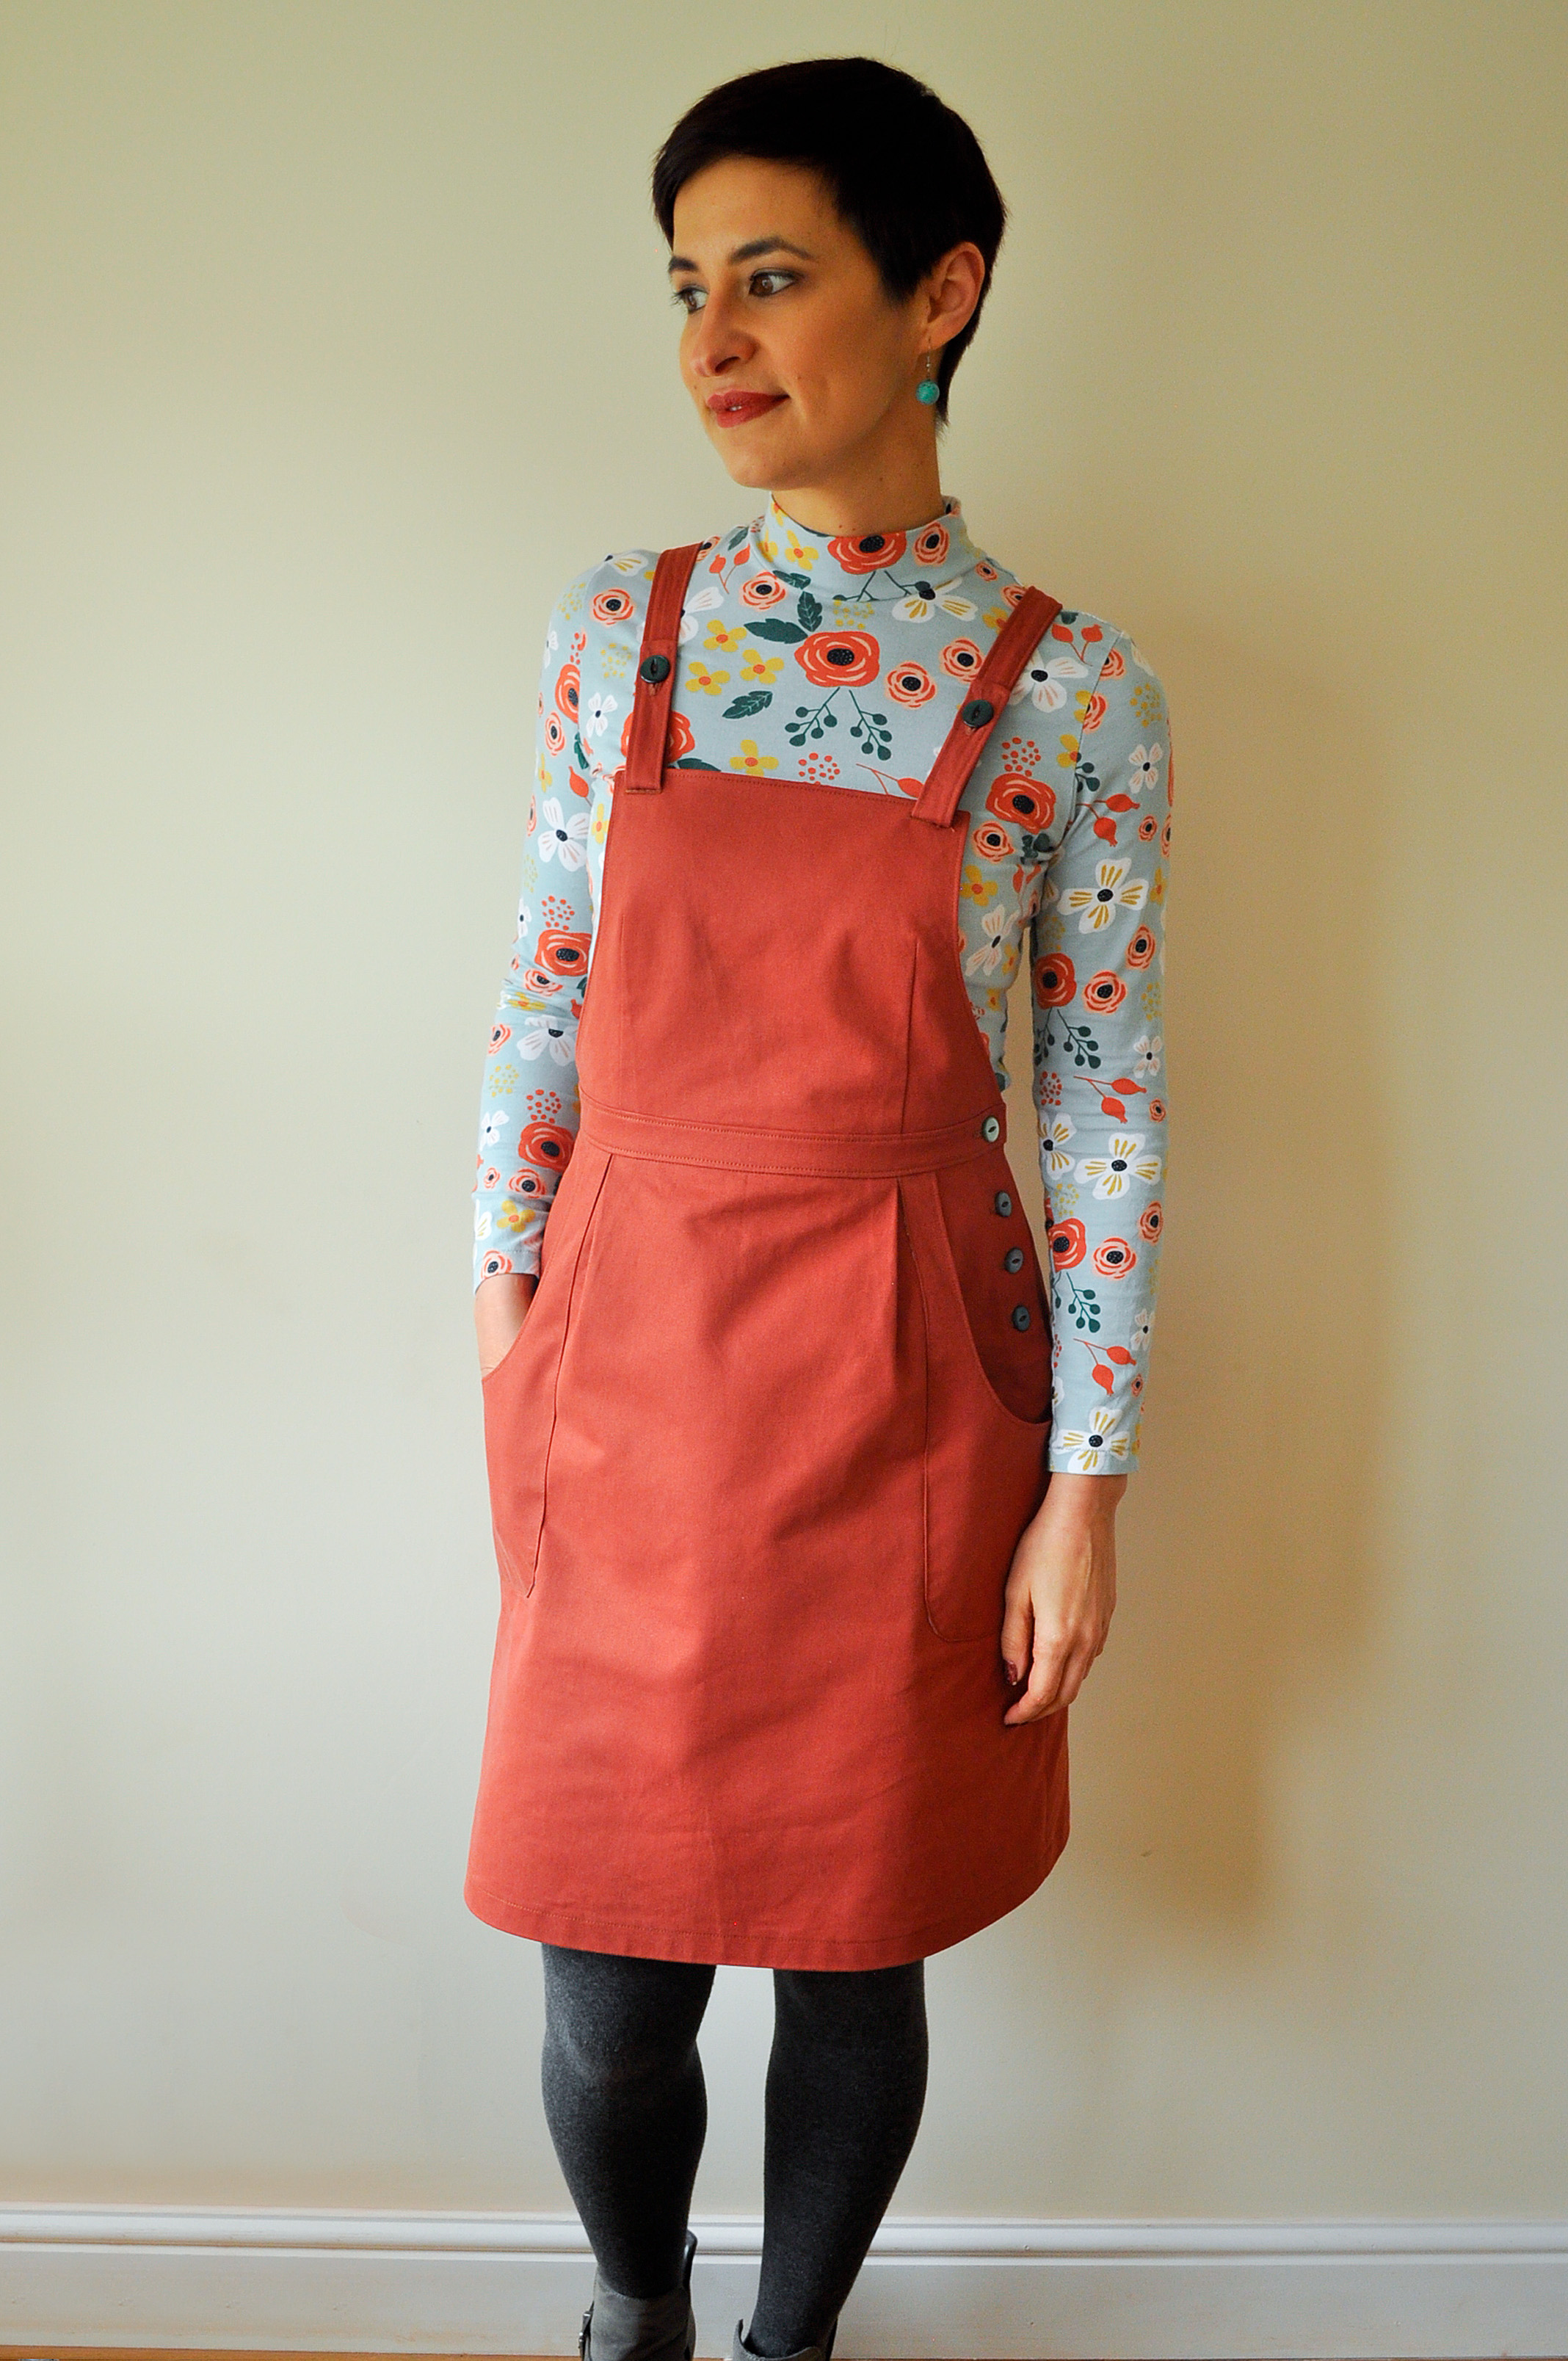 b5dfc639577 More photos and details can be found on my blog   https   www.patsypoomakes.com 2019 03 pippi-pinafore.html